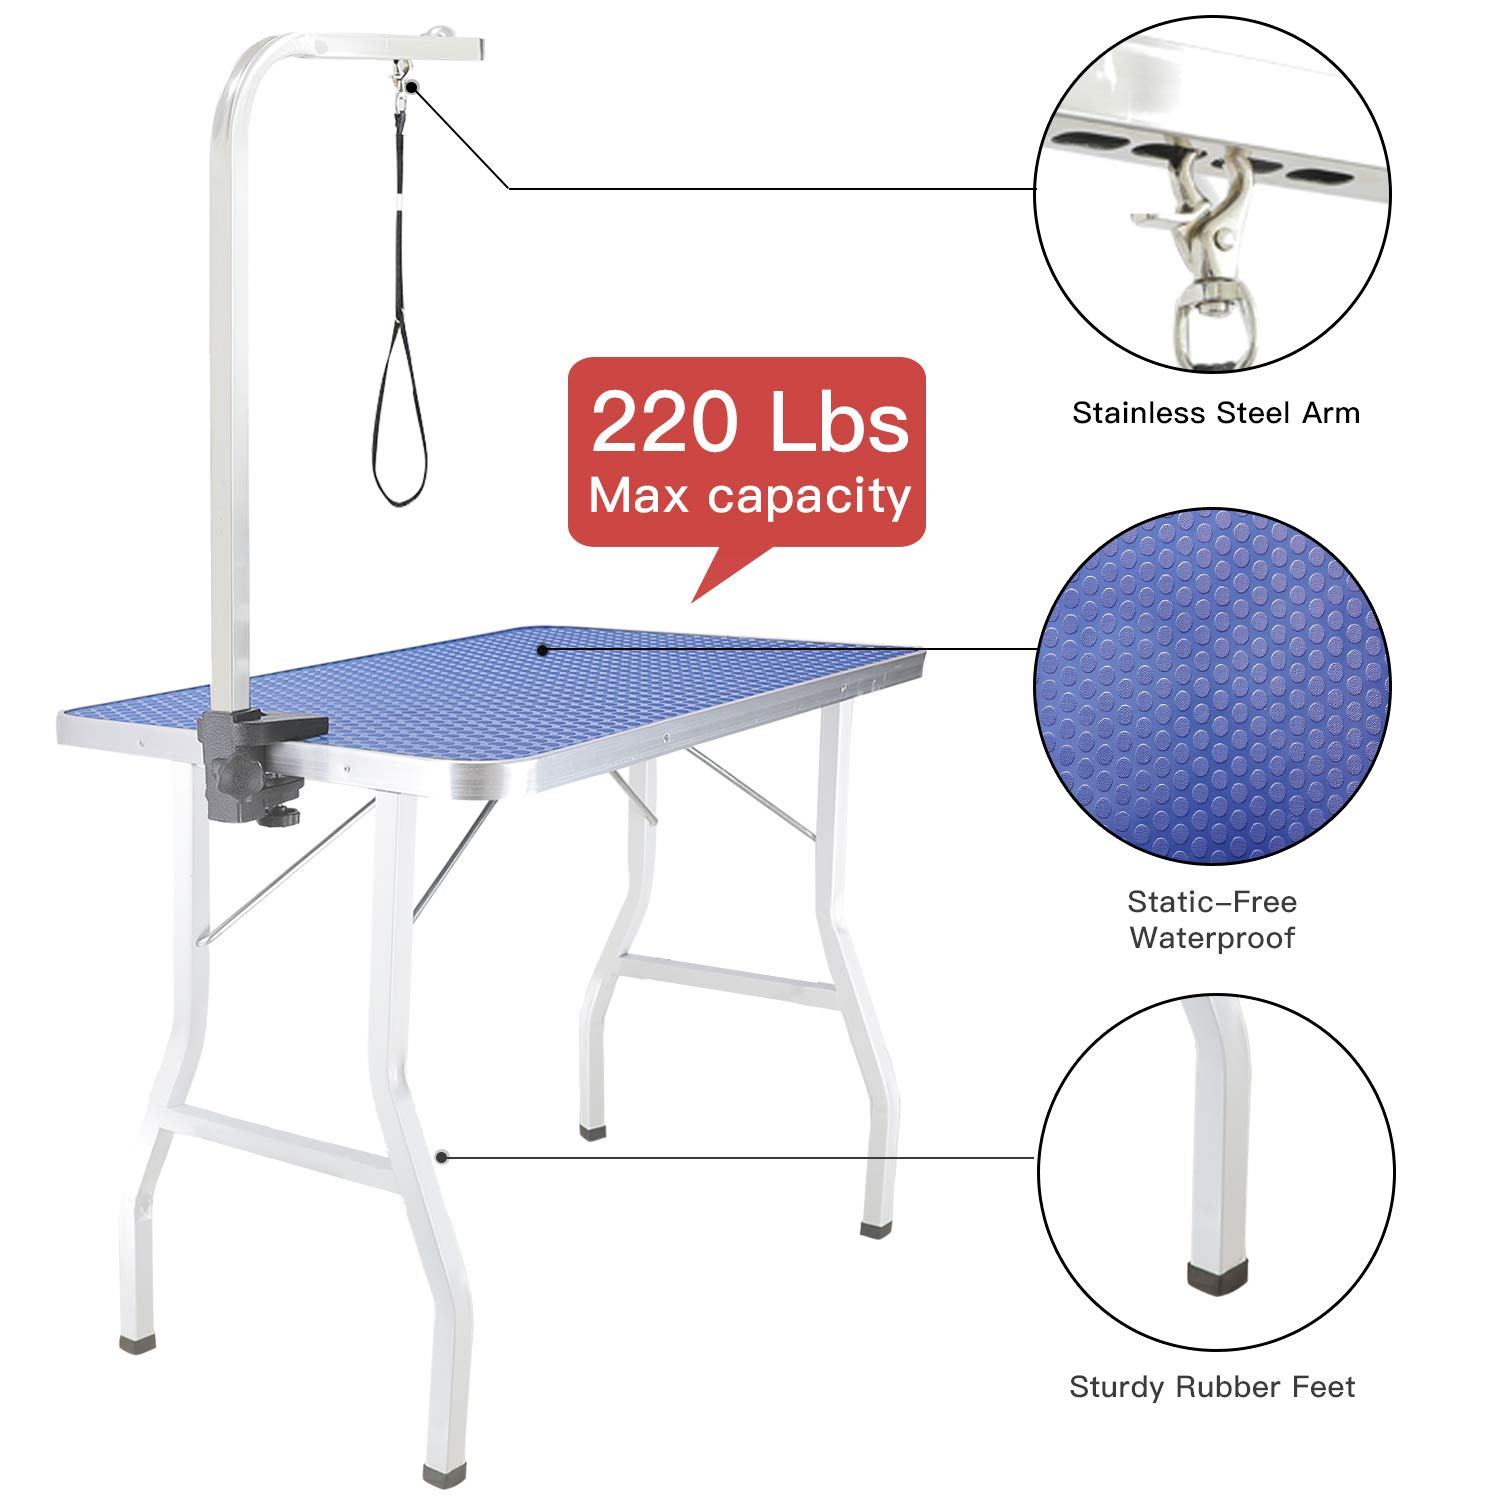 ITORI Pet Dog Grooming Table for Small Dog, Professional 32 in Foldable Portable Drying Table with Adjustable Height Arm&Noose, Maximum Capacity Up to 250lbs by ITORI